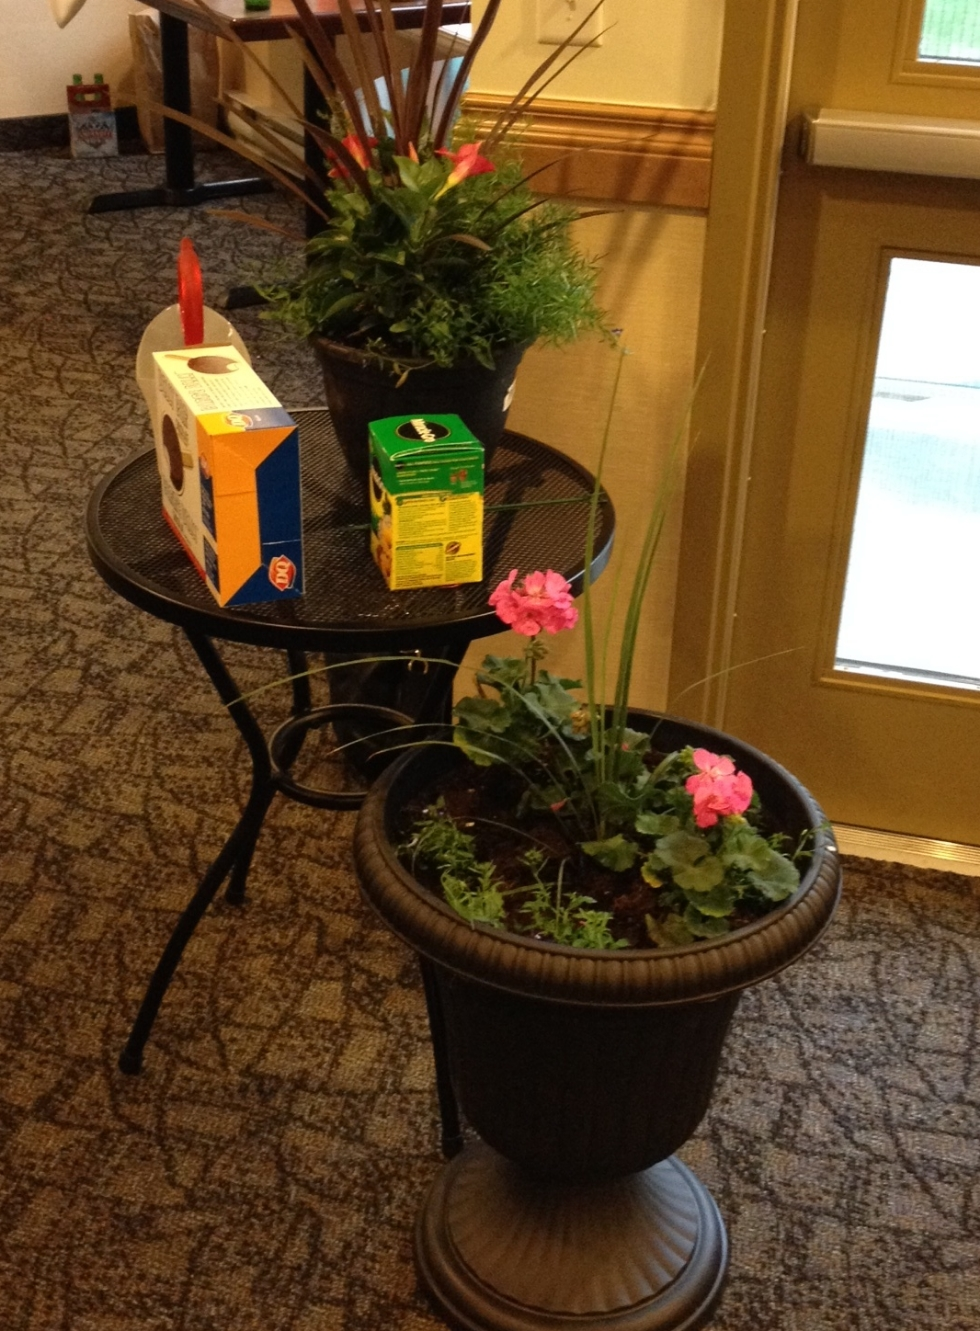 TADA! A patio fun extravaganza! plants...pot(s)...table..dilly bars...fertilizer..watering can.